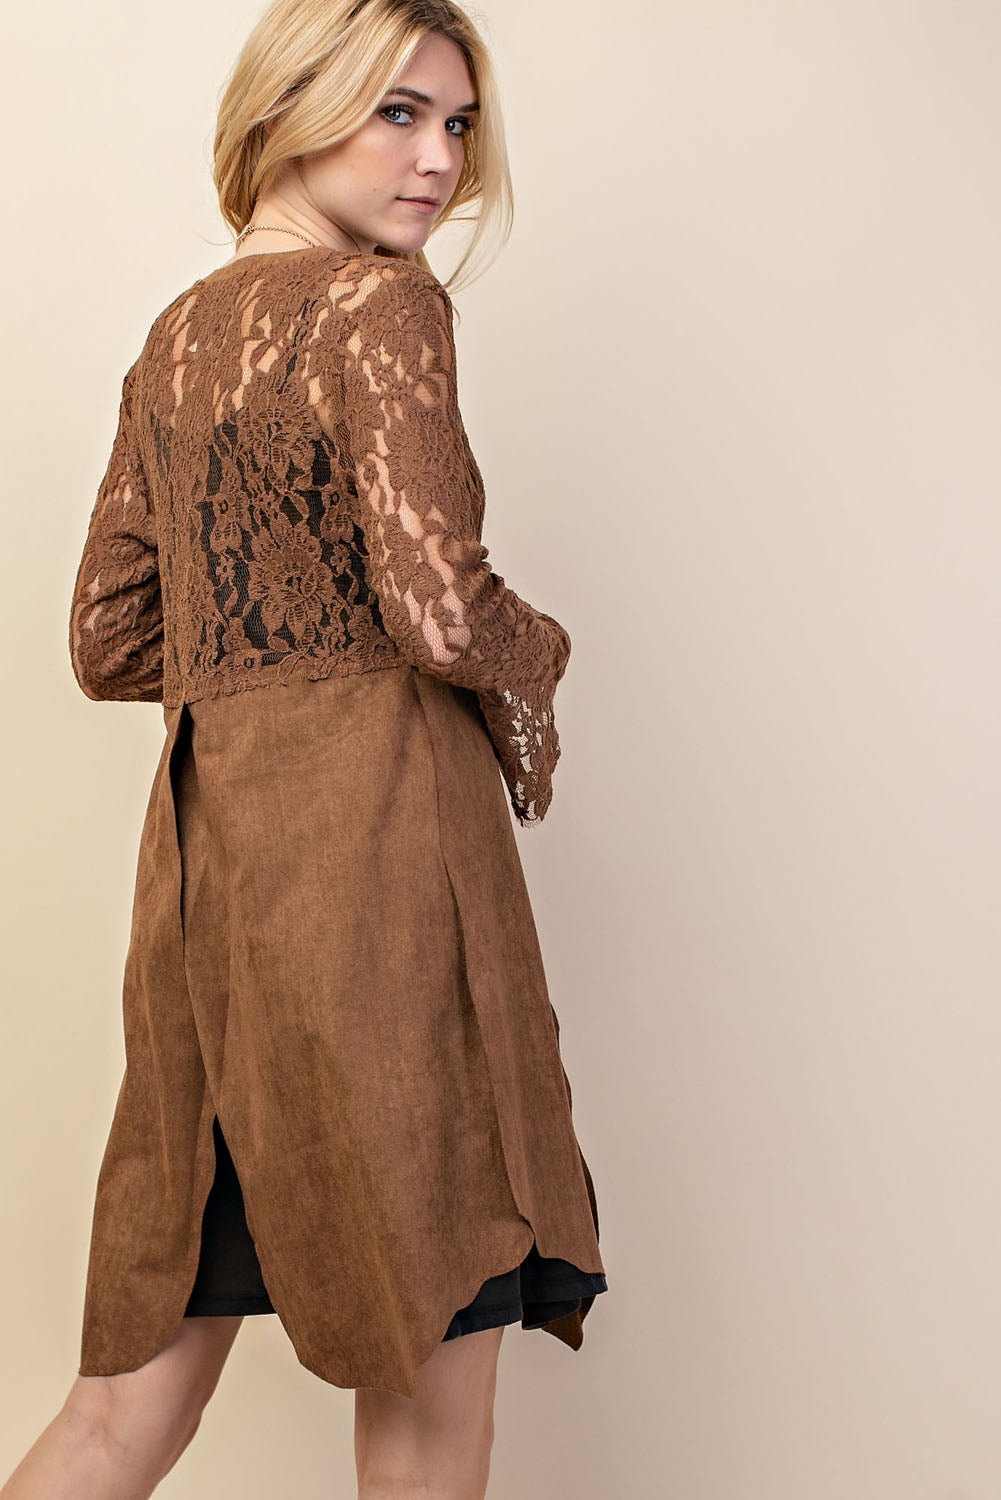 Suede and Lace Mixed Media Long Sleeve Cardigan with Slit